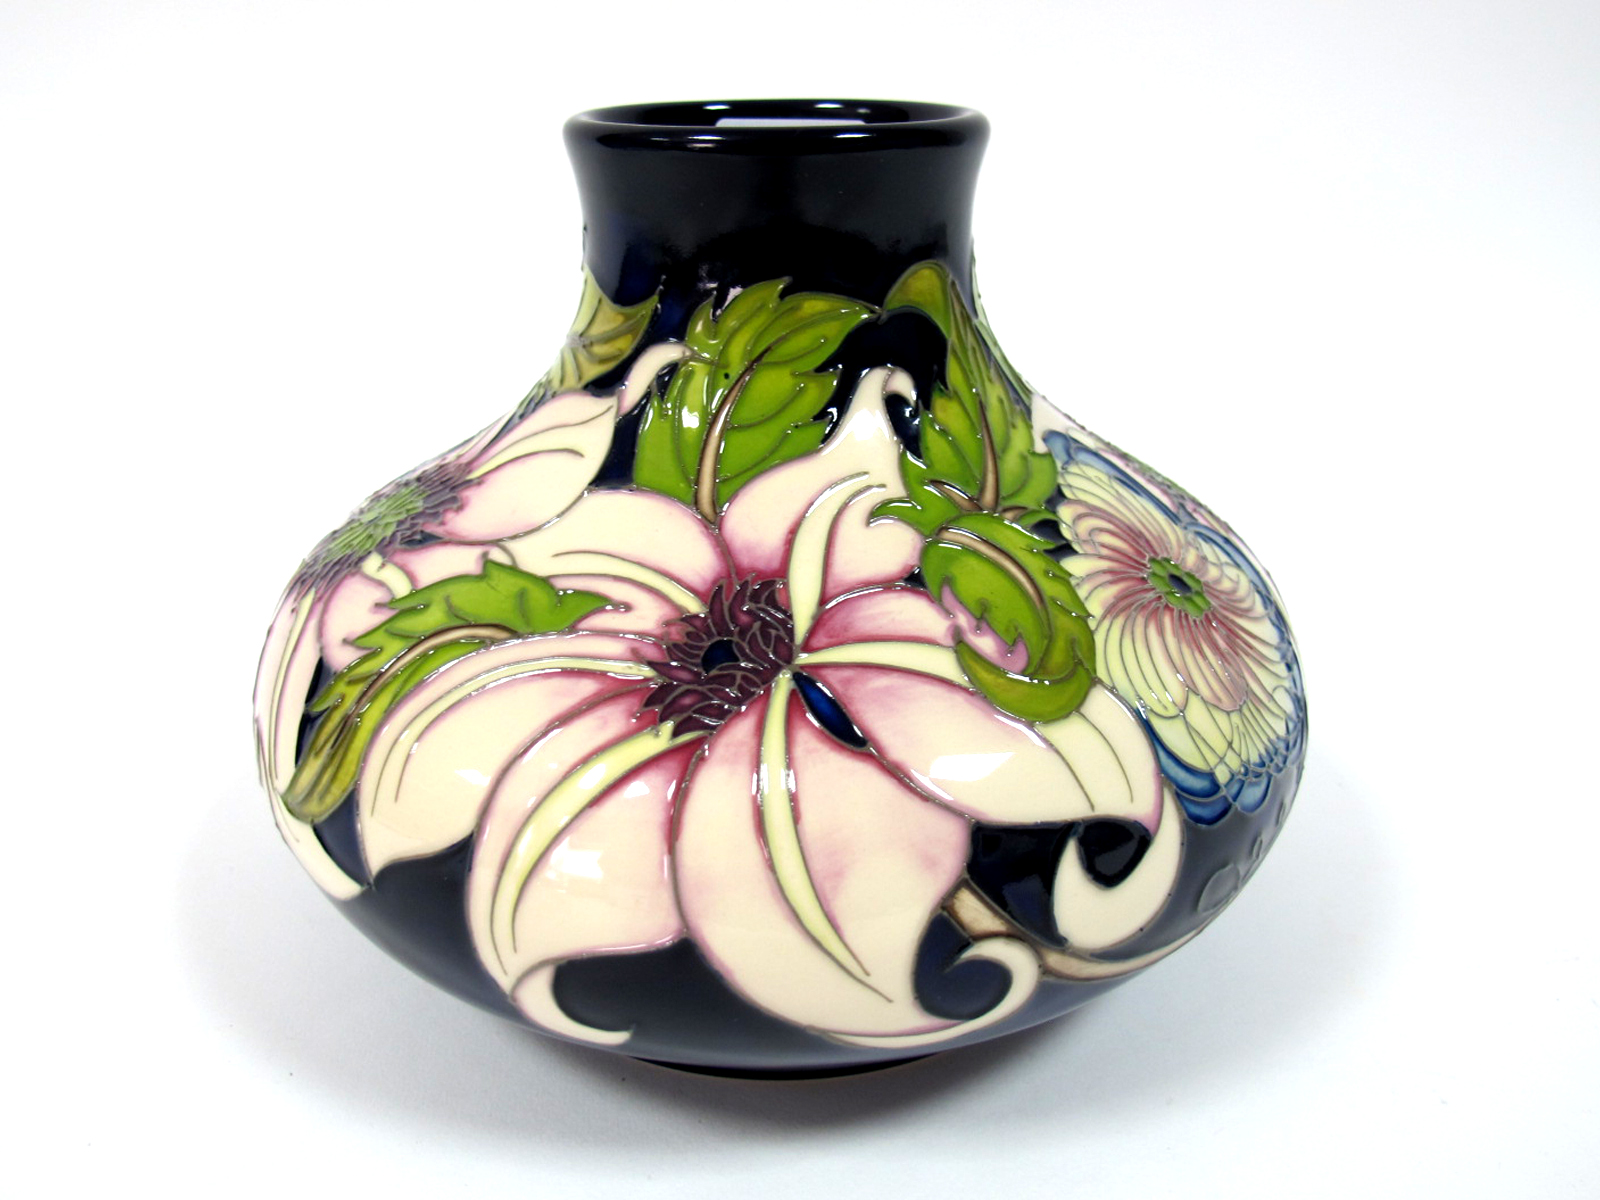 Lot 448 - A Modern Moorcroft Pottery Vase, of squat baluster form, painted in the Pure Innocence pattern